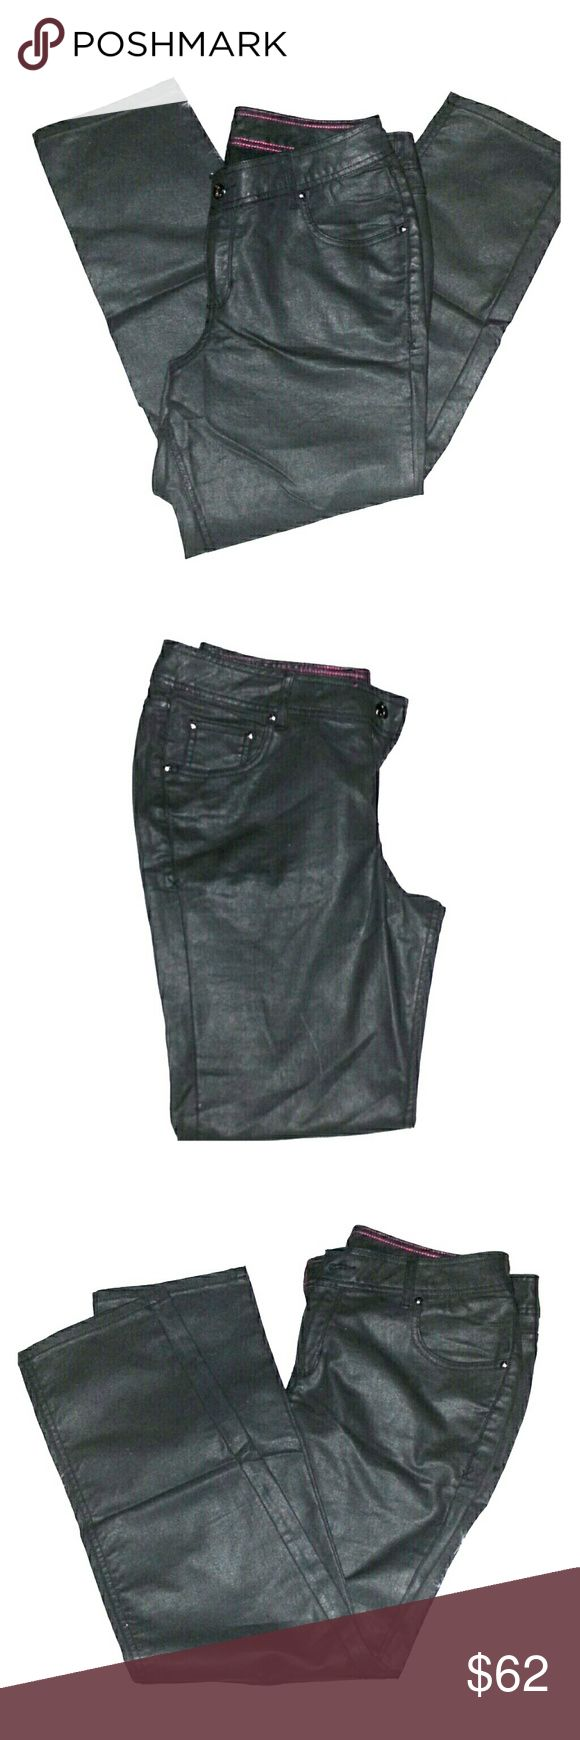 """Lane Bryant  Stretch Satin Jeggin. Sexy form fitting 5 pockets stretch satin charcoal gray Jeggin. Zipper front. 36"""" Waist and 30"""" Inseam. Worn once. Great condition Lane Bryant Pants Skinny"""